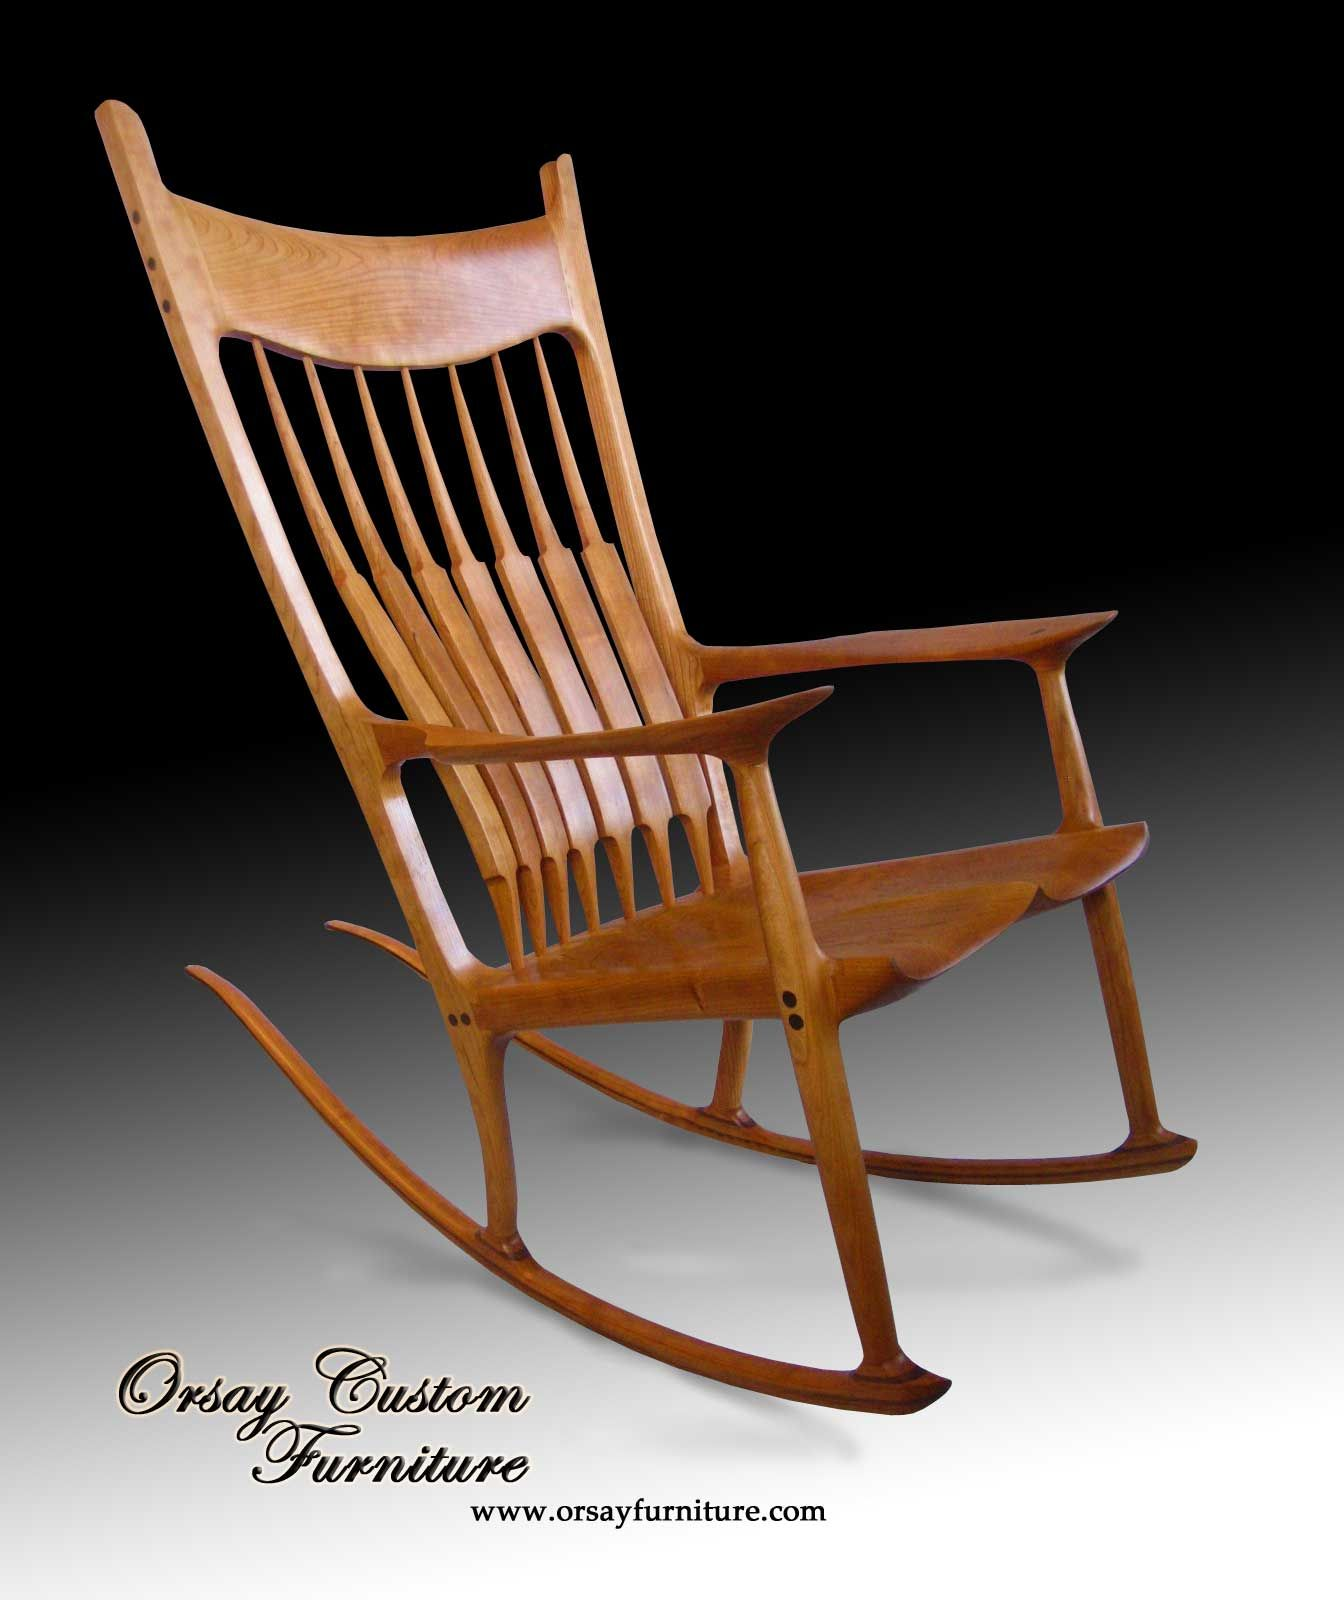 Rocking chair. Handmade of black cherry with black walnut dowels. This Maloof style sculptured